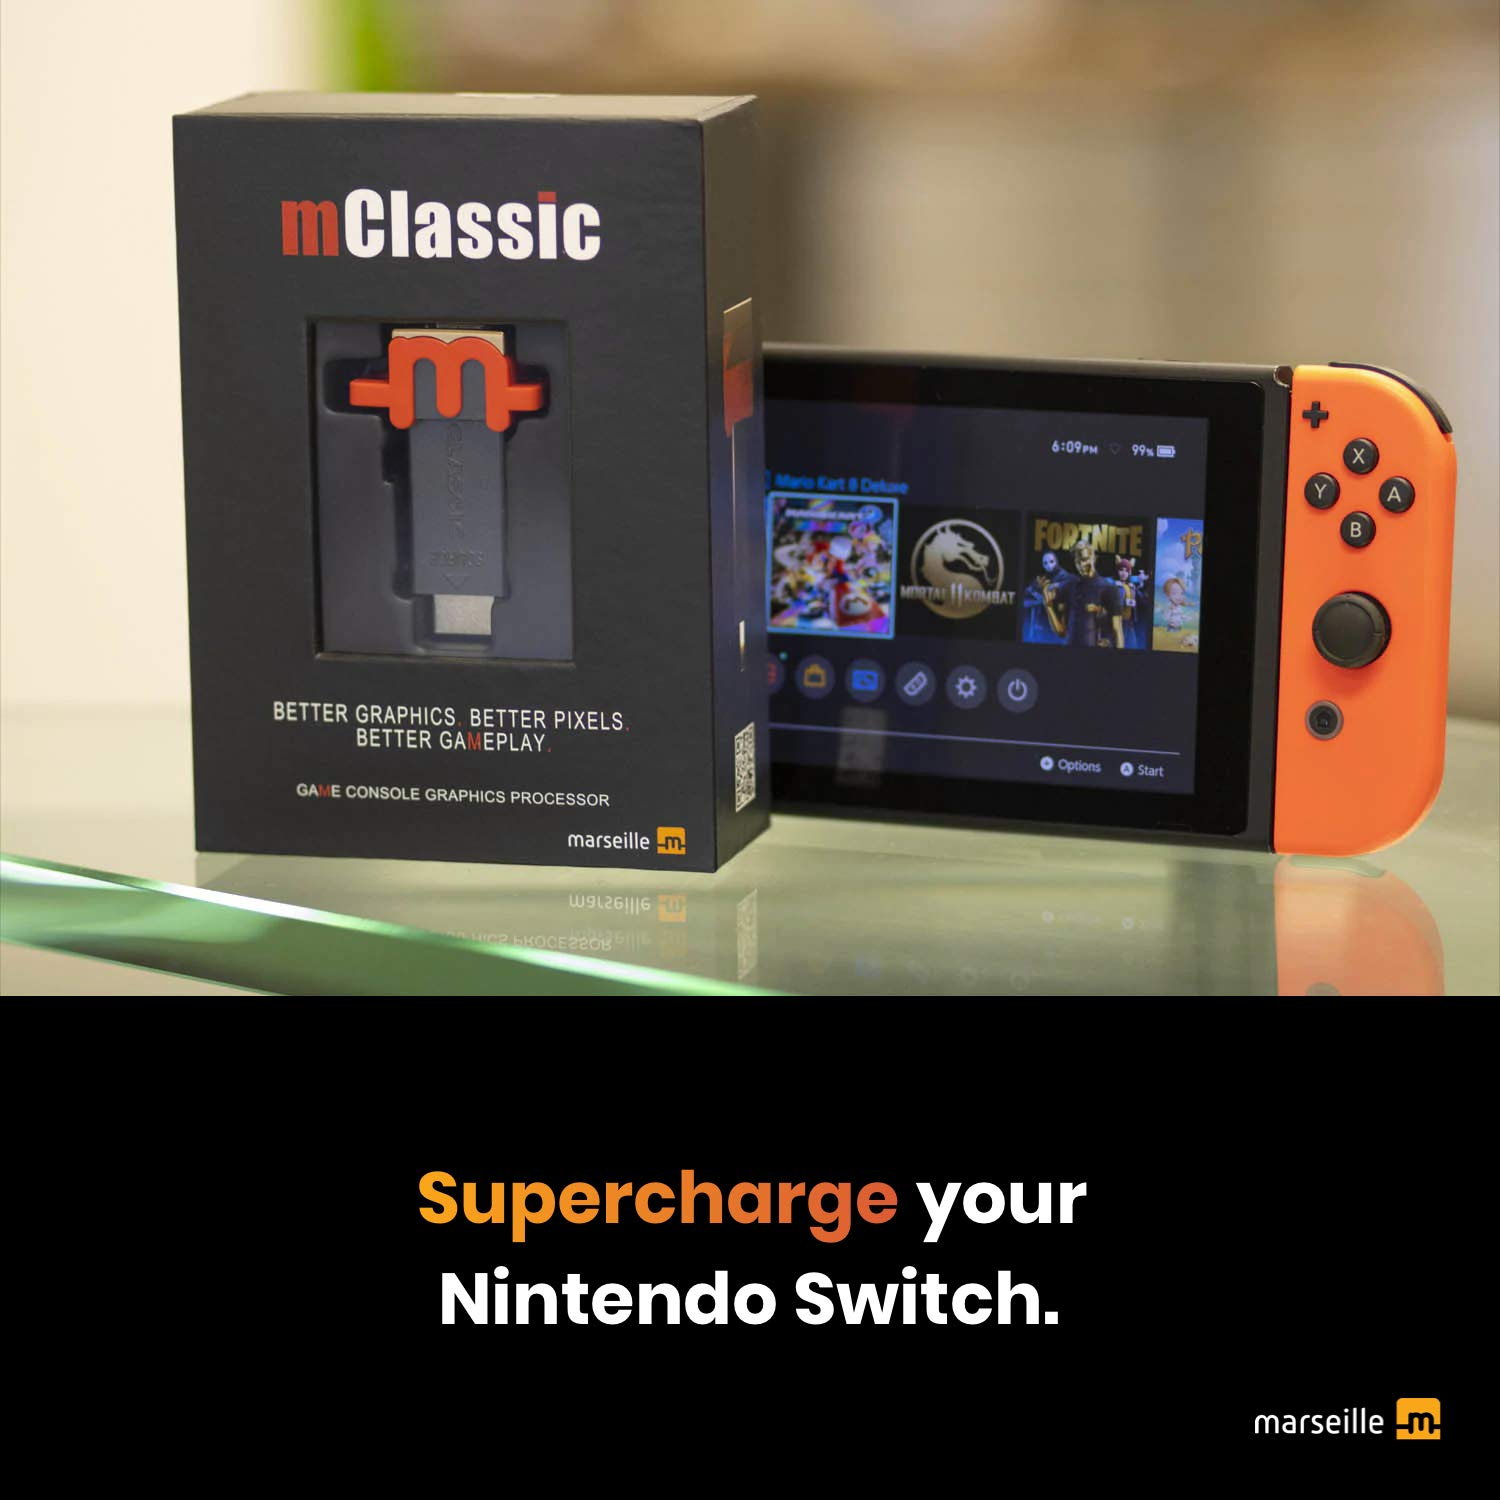 Supercharge Your Nintendo Switch and Retro Game Consoles with mClassic Graphics Enhancer for Real-Time Image Sharpening, Color Correction, Anti-Aliasing and Dot-Crawl Elimination: Video Games